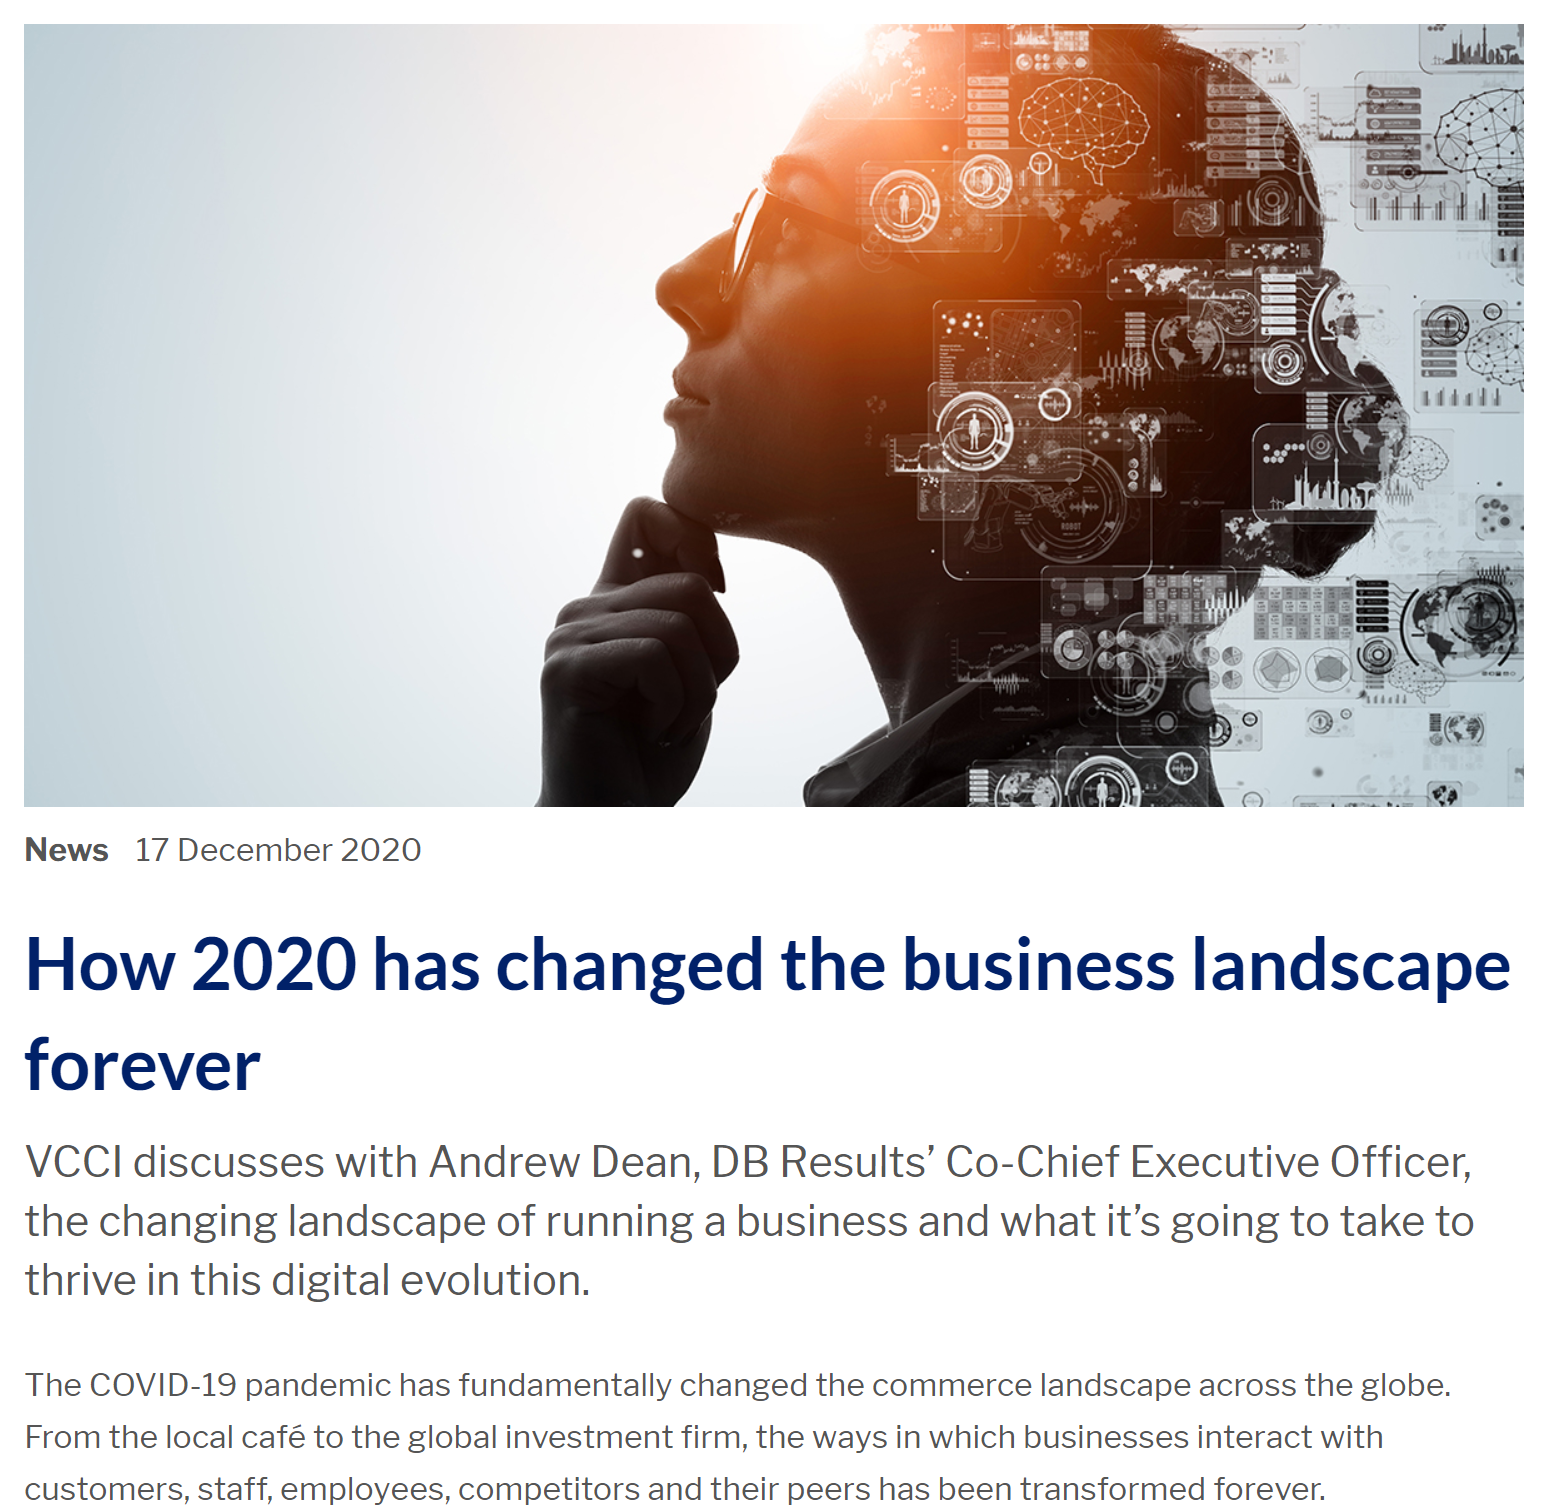 "A screencap of a portion of the linked article. Text reads: ""How 2020 has changed the business landscape forever. VCCI discusses with Andrew Dean, DB Results' Co-Chief Executive Officer, the changing landscape of running a business and what its going to take to thrive in this digital evolution. The COVID-19 pandemic has fundamentally changed the commerce landscape across the globe. From the local cafe to the global investment firm, the ways in which businesses interact with customers, staff, employees, competitors and their peers has been transformed forever."""